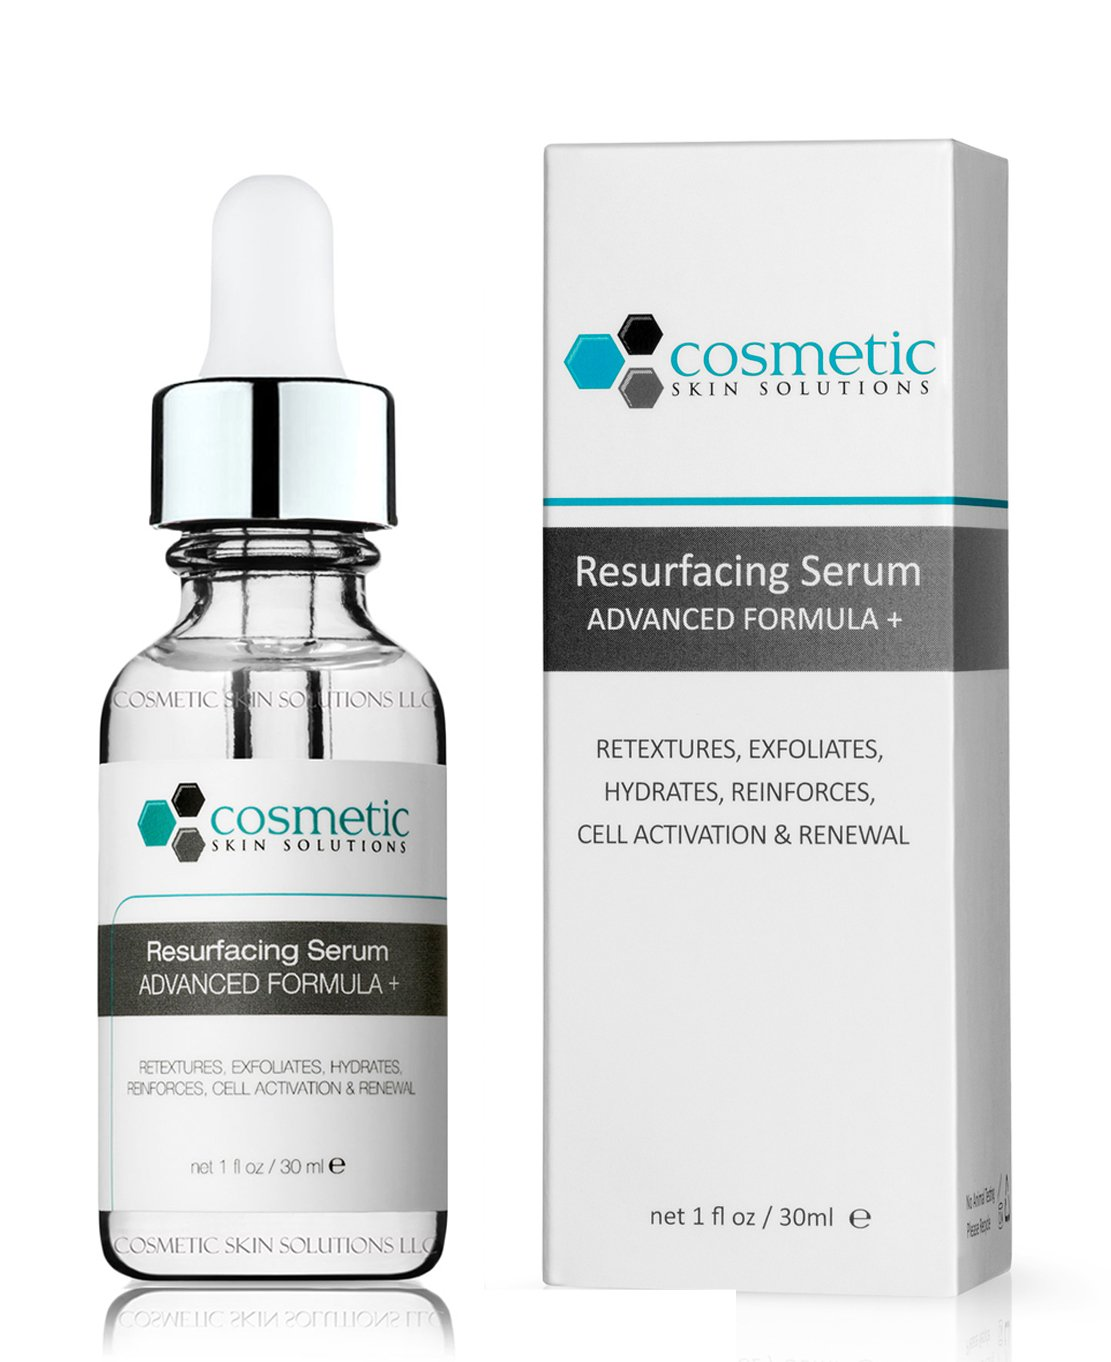 Best Resurfacing Serum Advanced Formula + 1 fl oz / 30 ml - Exfoliates, retextures, activates, replenishes, & hydrates.